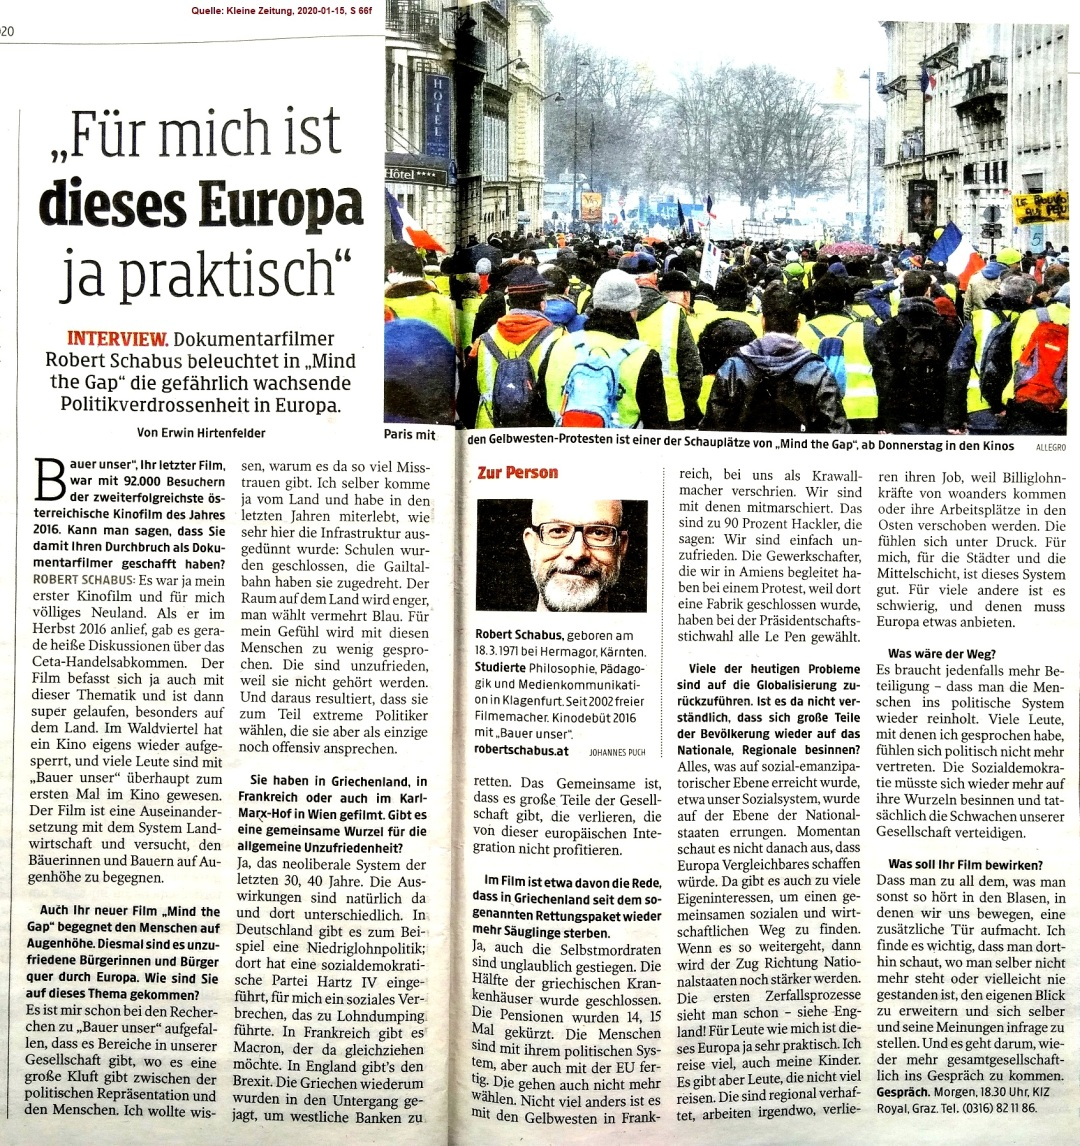 2020-01-15_Kleine-Zeitung_Robert-Schabus_Mind-the-Gap_Interview